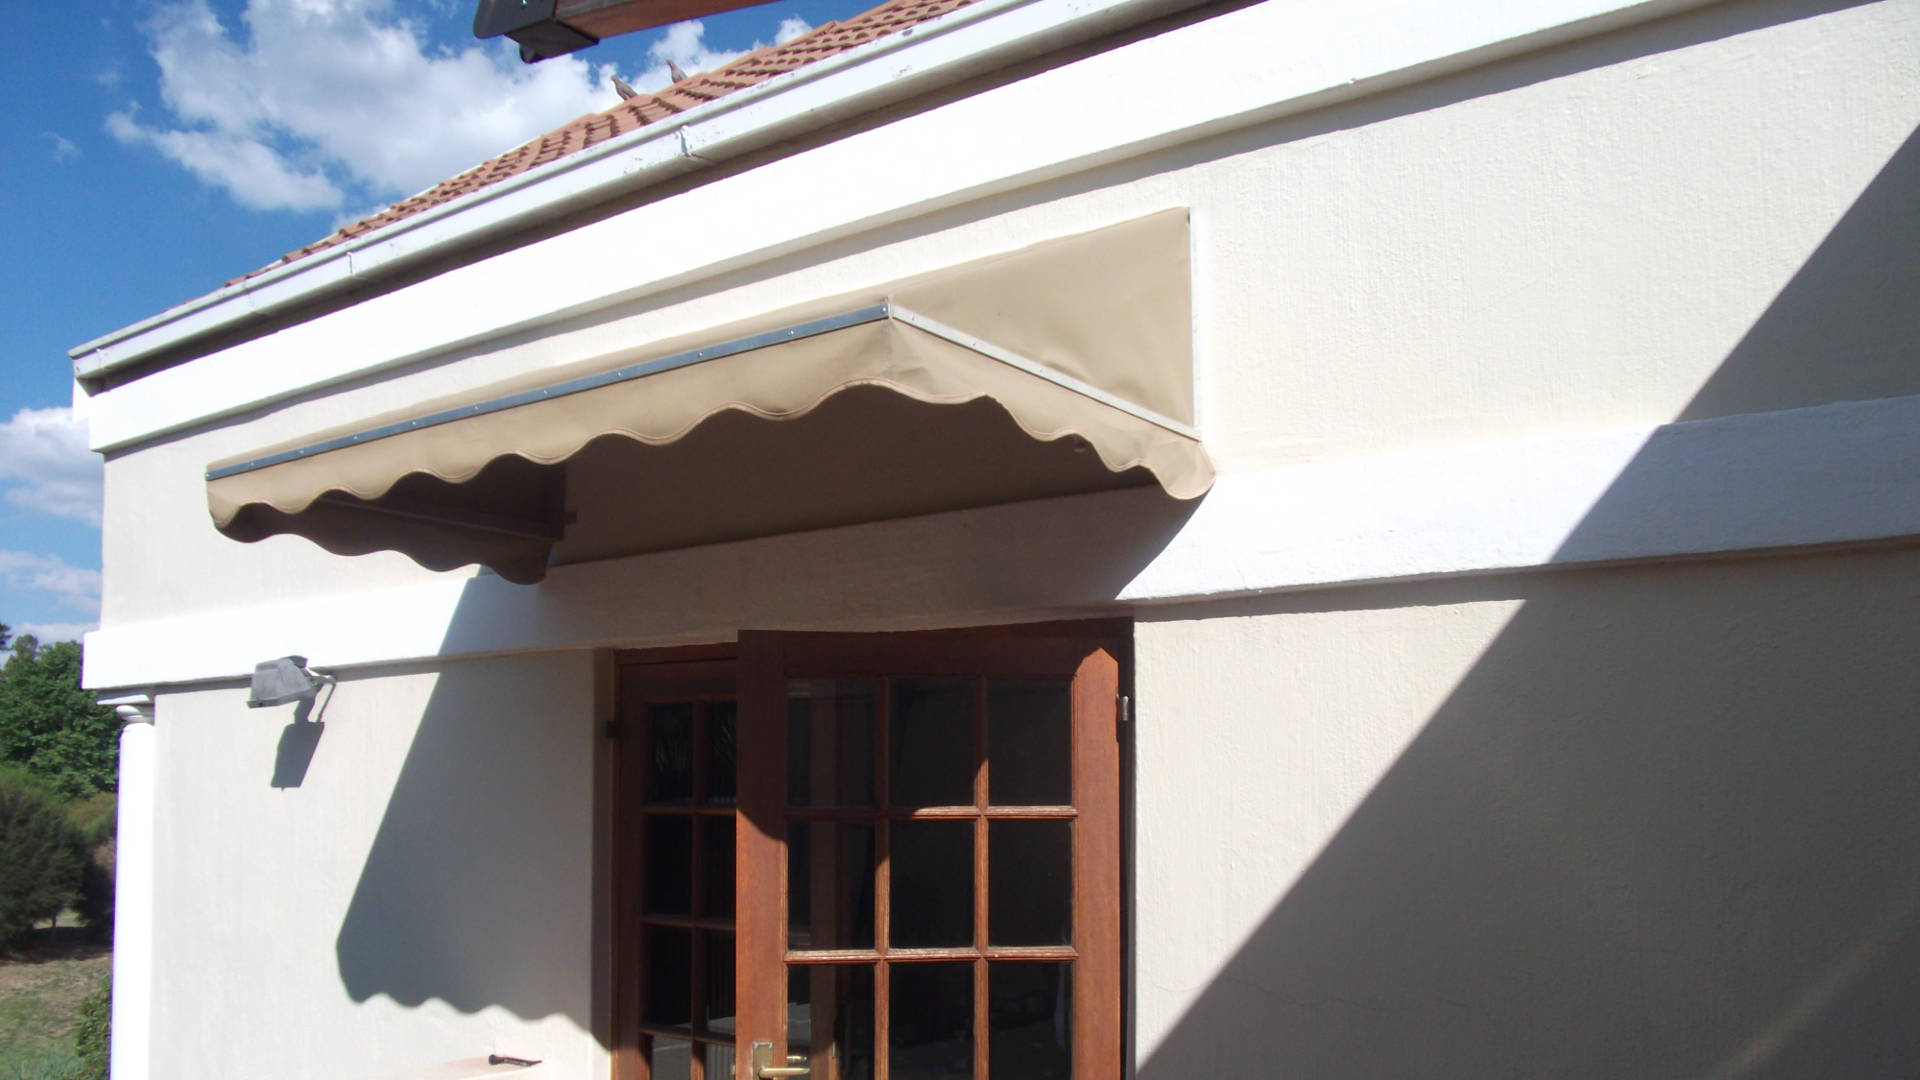 of awnings sun awning decks canopy carports for retractable canvas size outdoor full deck